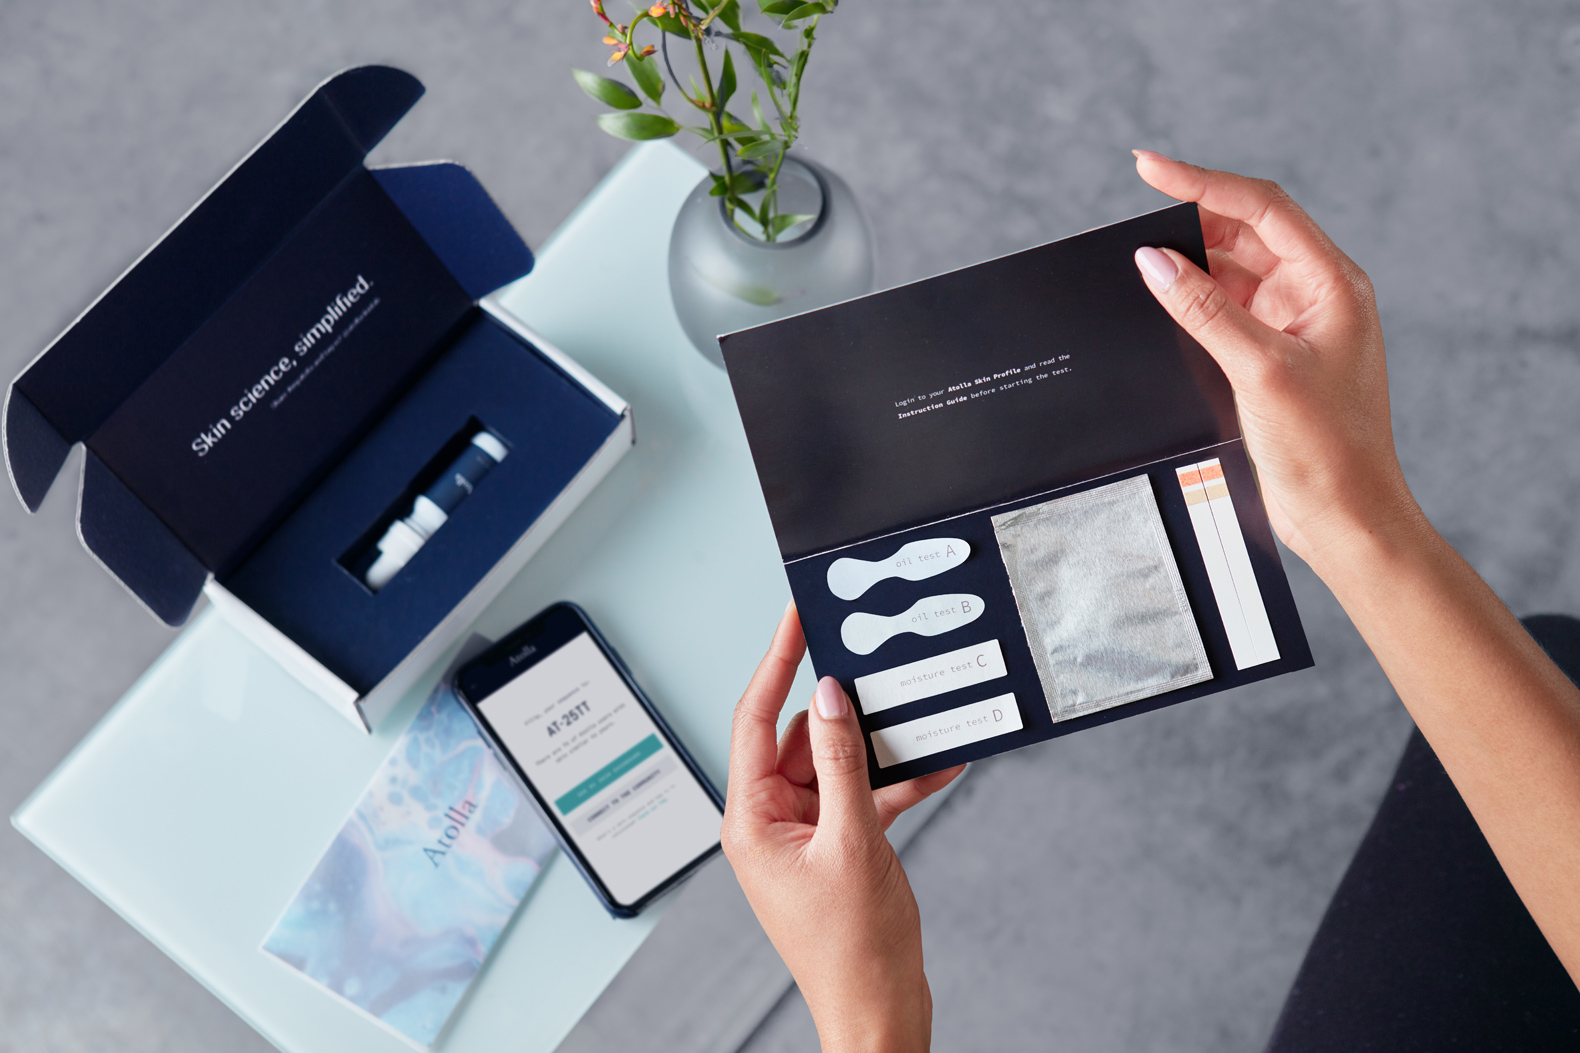 Atolla combines technology with design to customize sustainable skincare